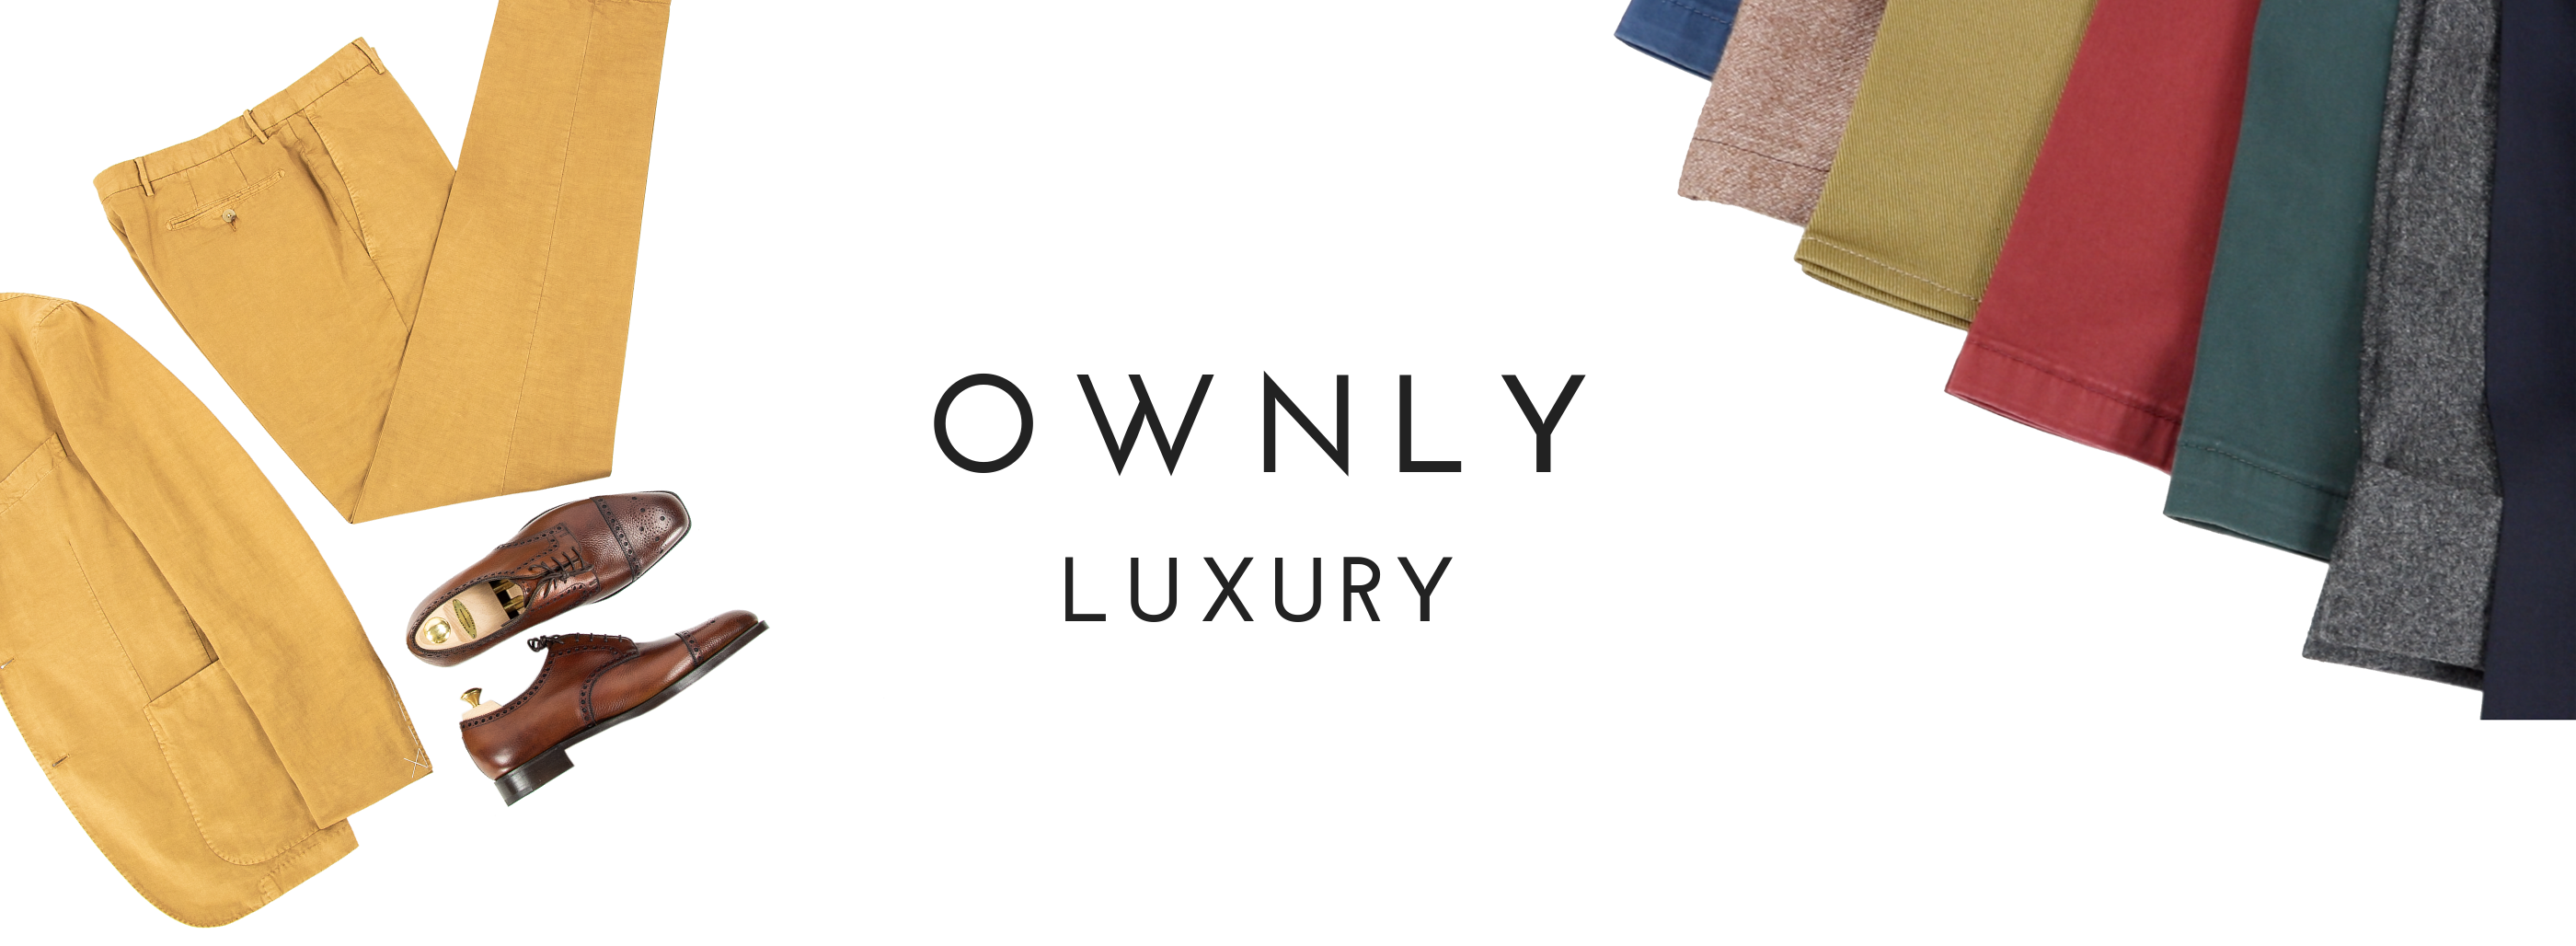 Copy of Copy of LUXURY.png